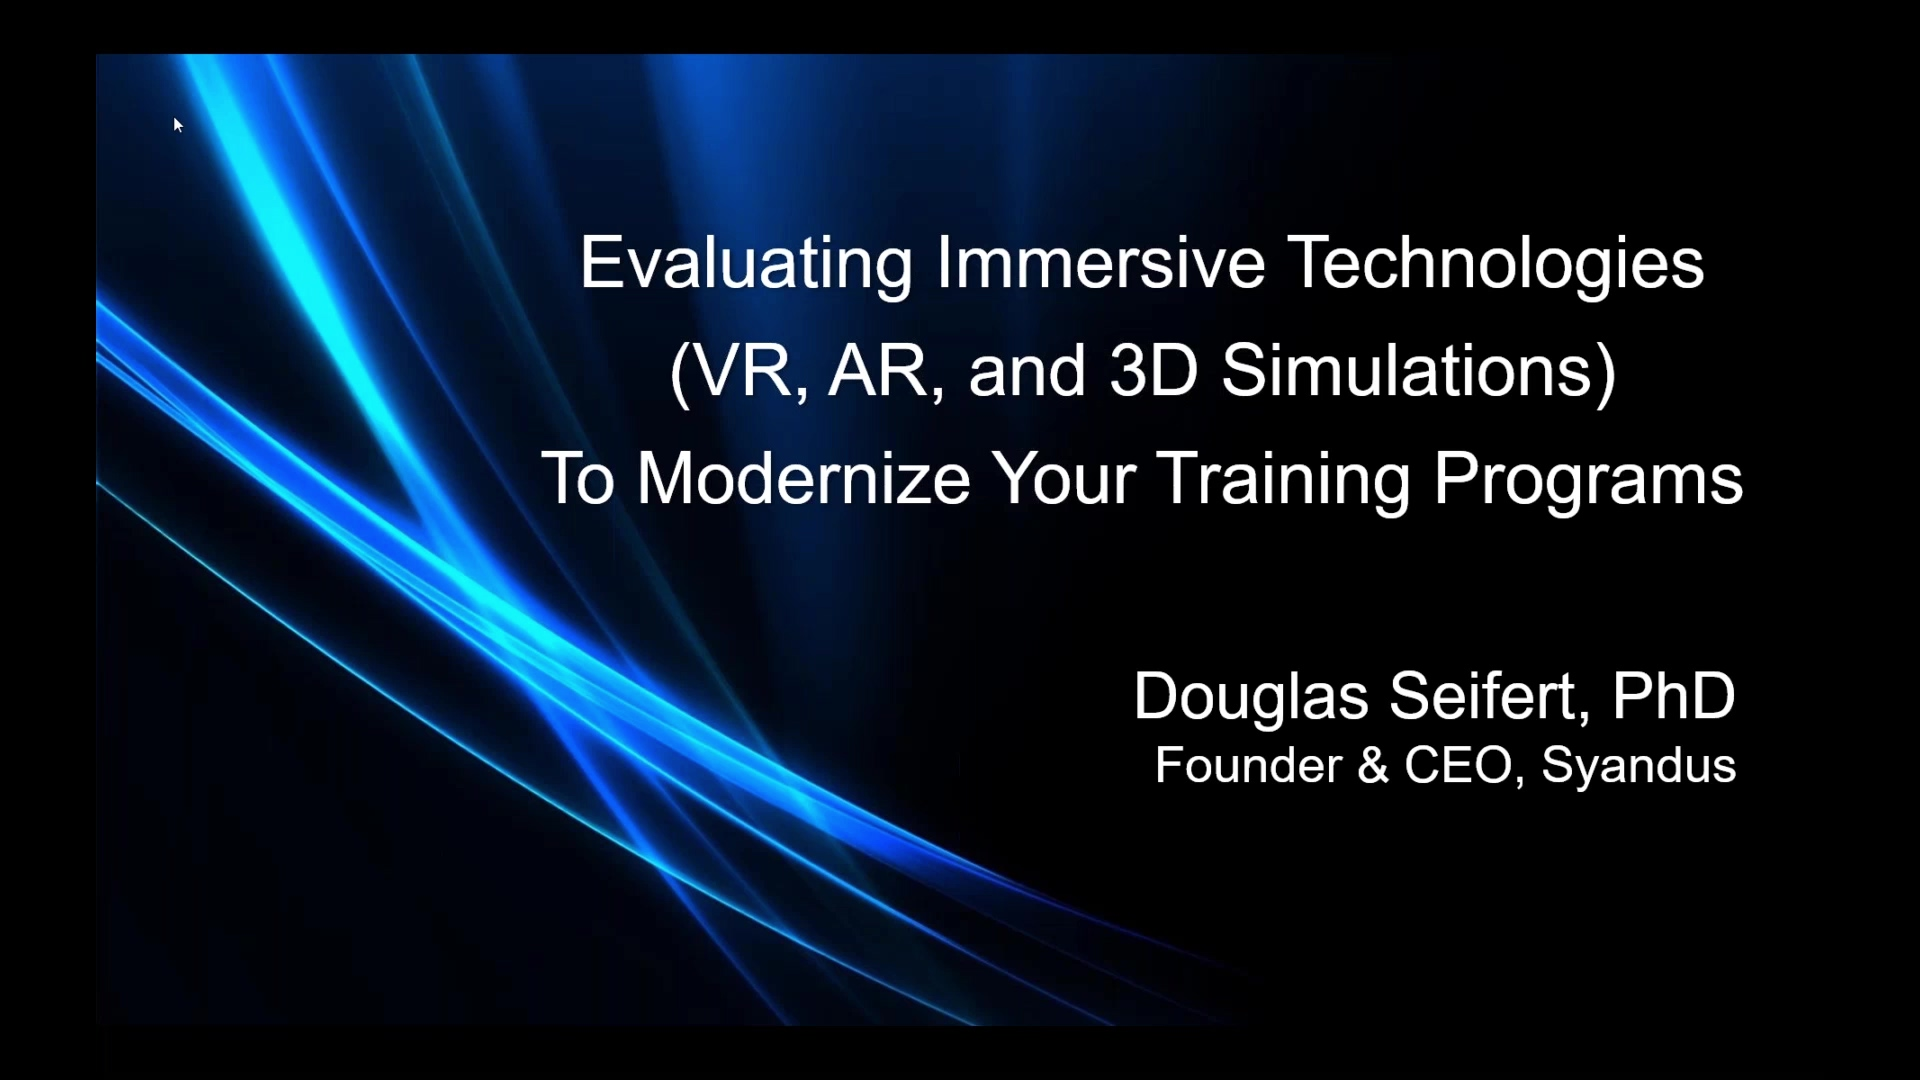 Evaluating_Immersive_Technologies